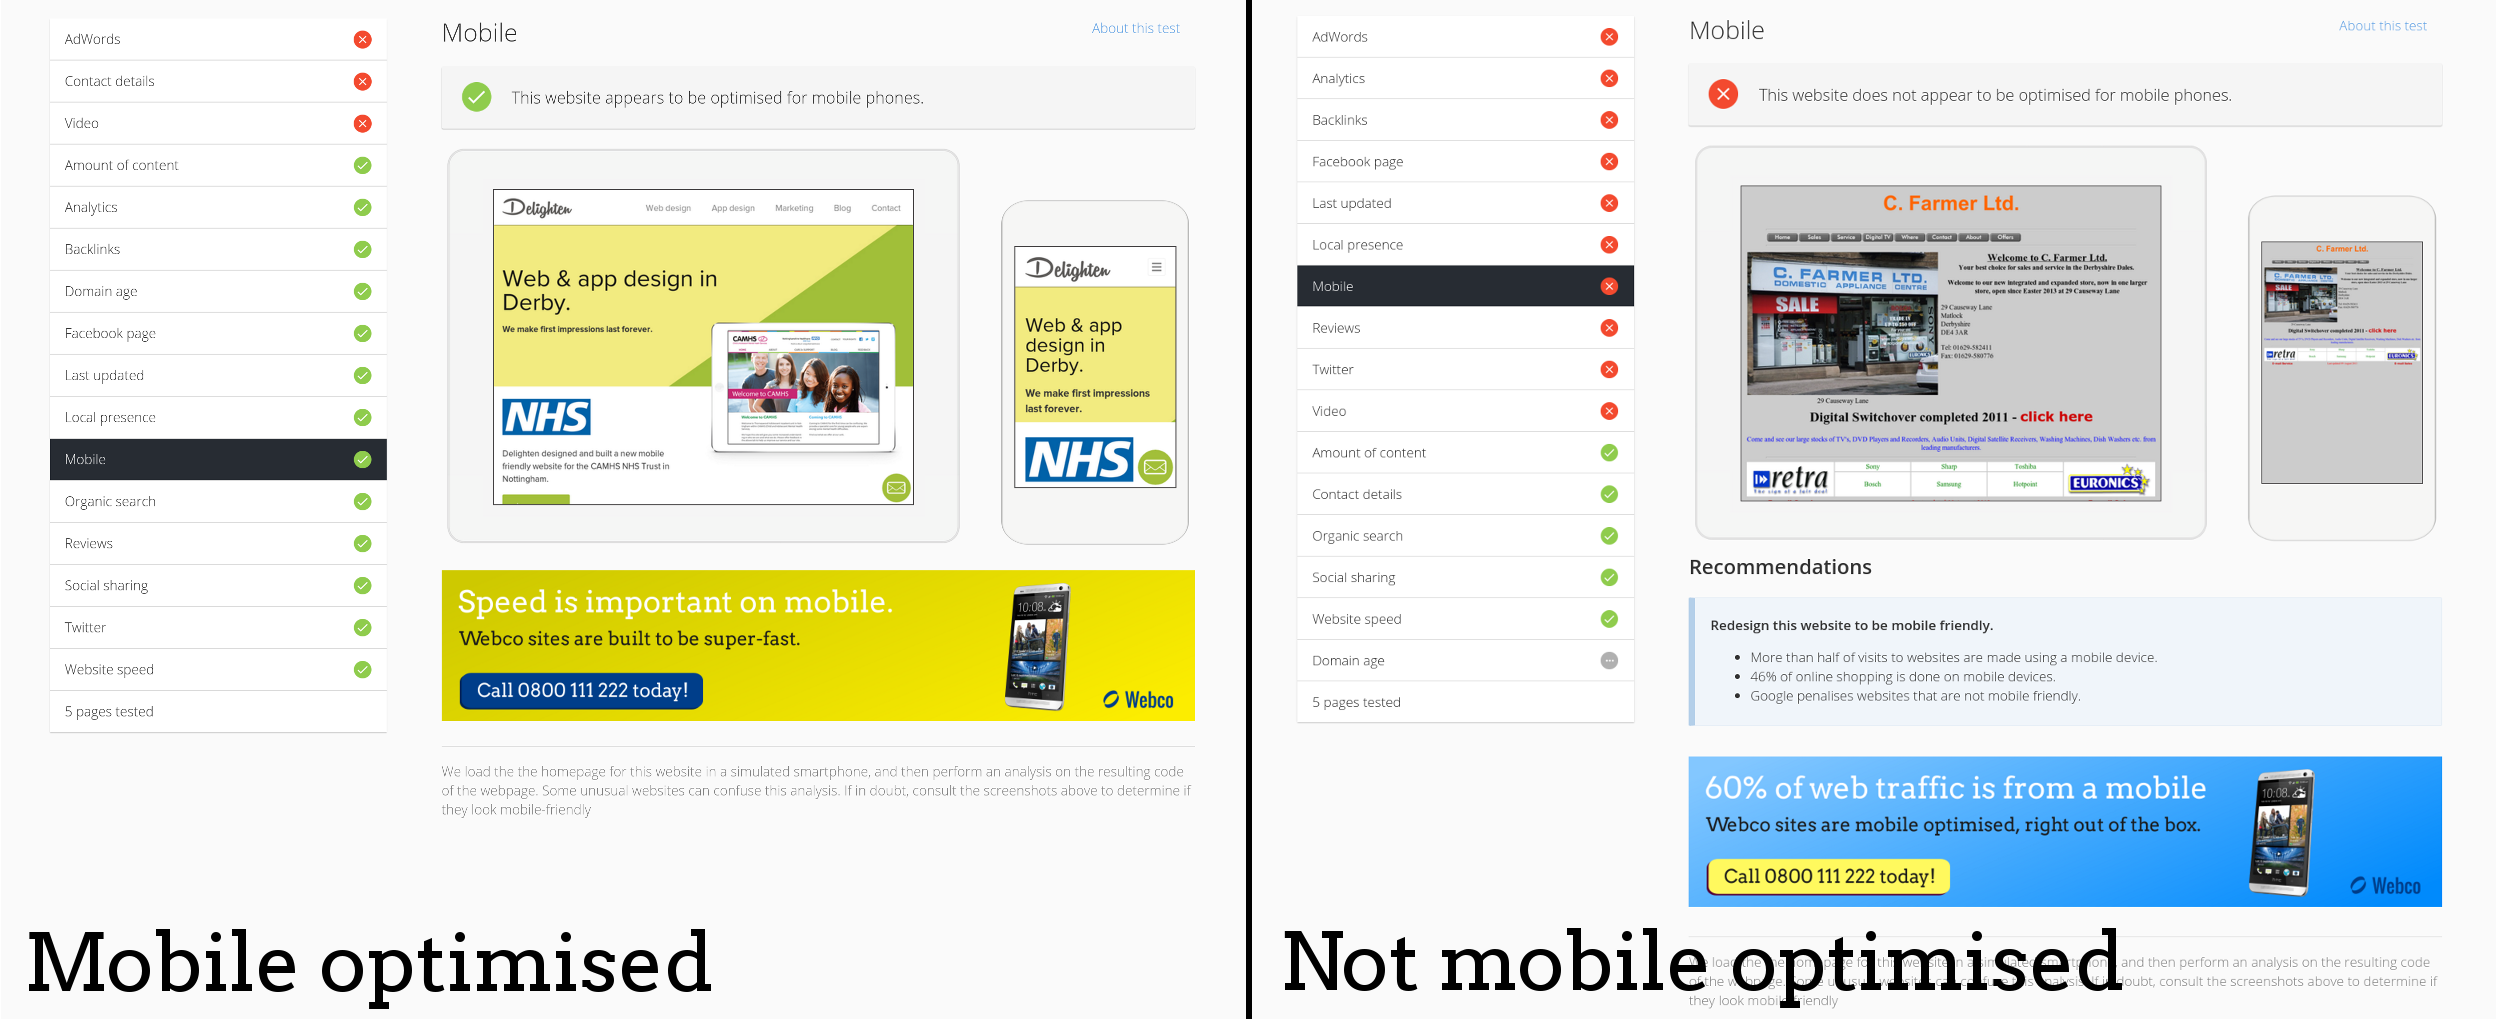 Comparison of calls to action against a site that is mobile optimized, versus a site that is not mobile optimized. The call to action is different based on how the site performs in this area.